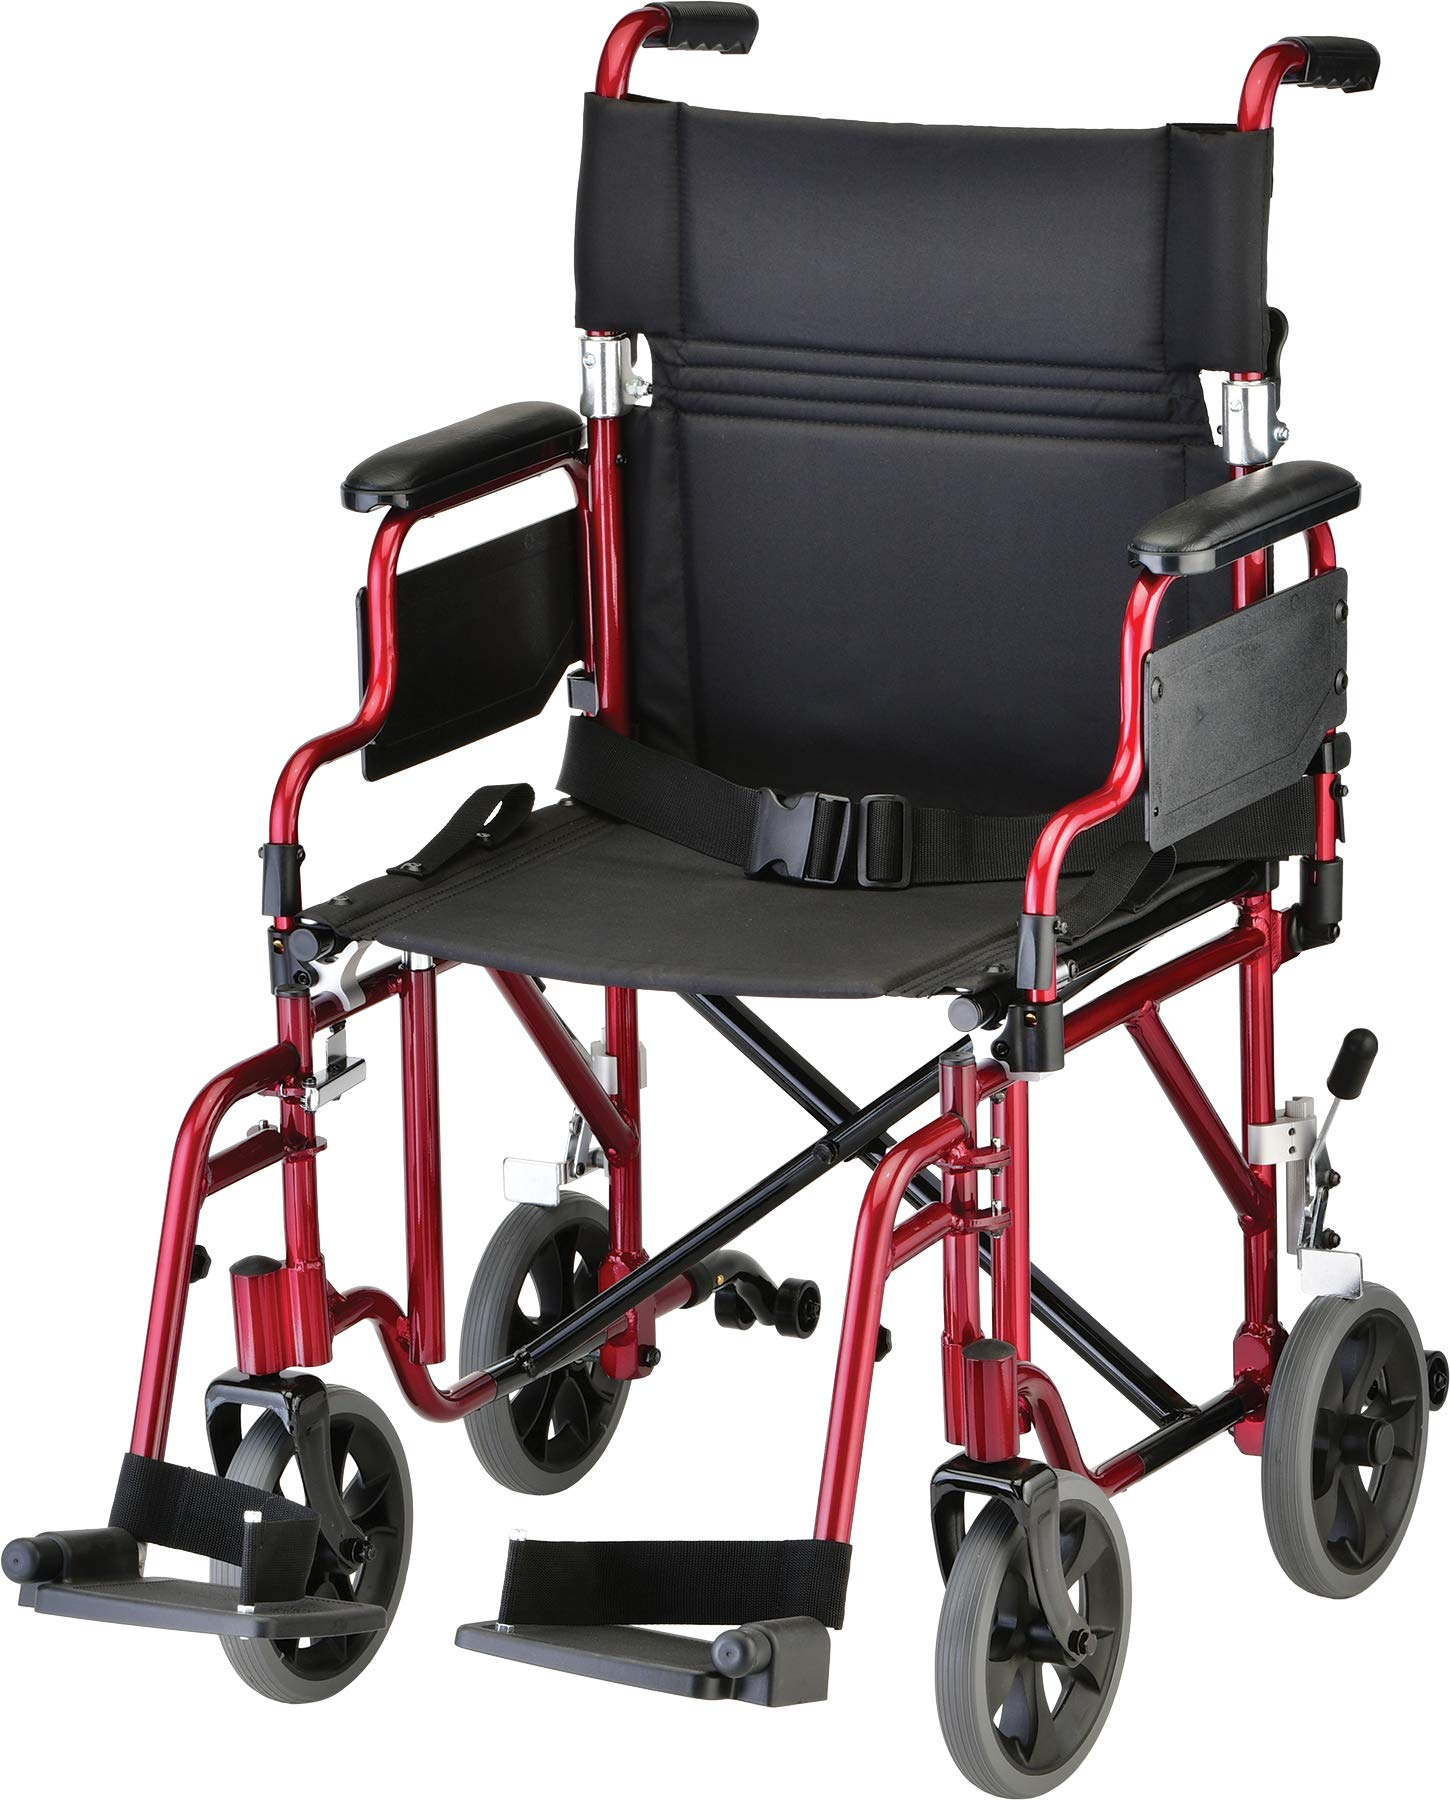 NOVA Lightweight Transport Chair with Removable & Flip Up Arms for Easy Transfer, Anti-Tippers Included, Red by NOVA Medical Products